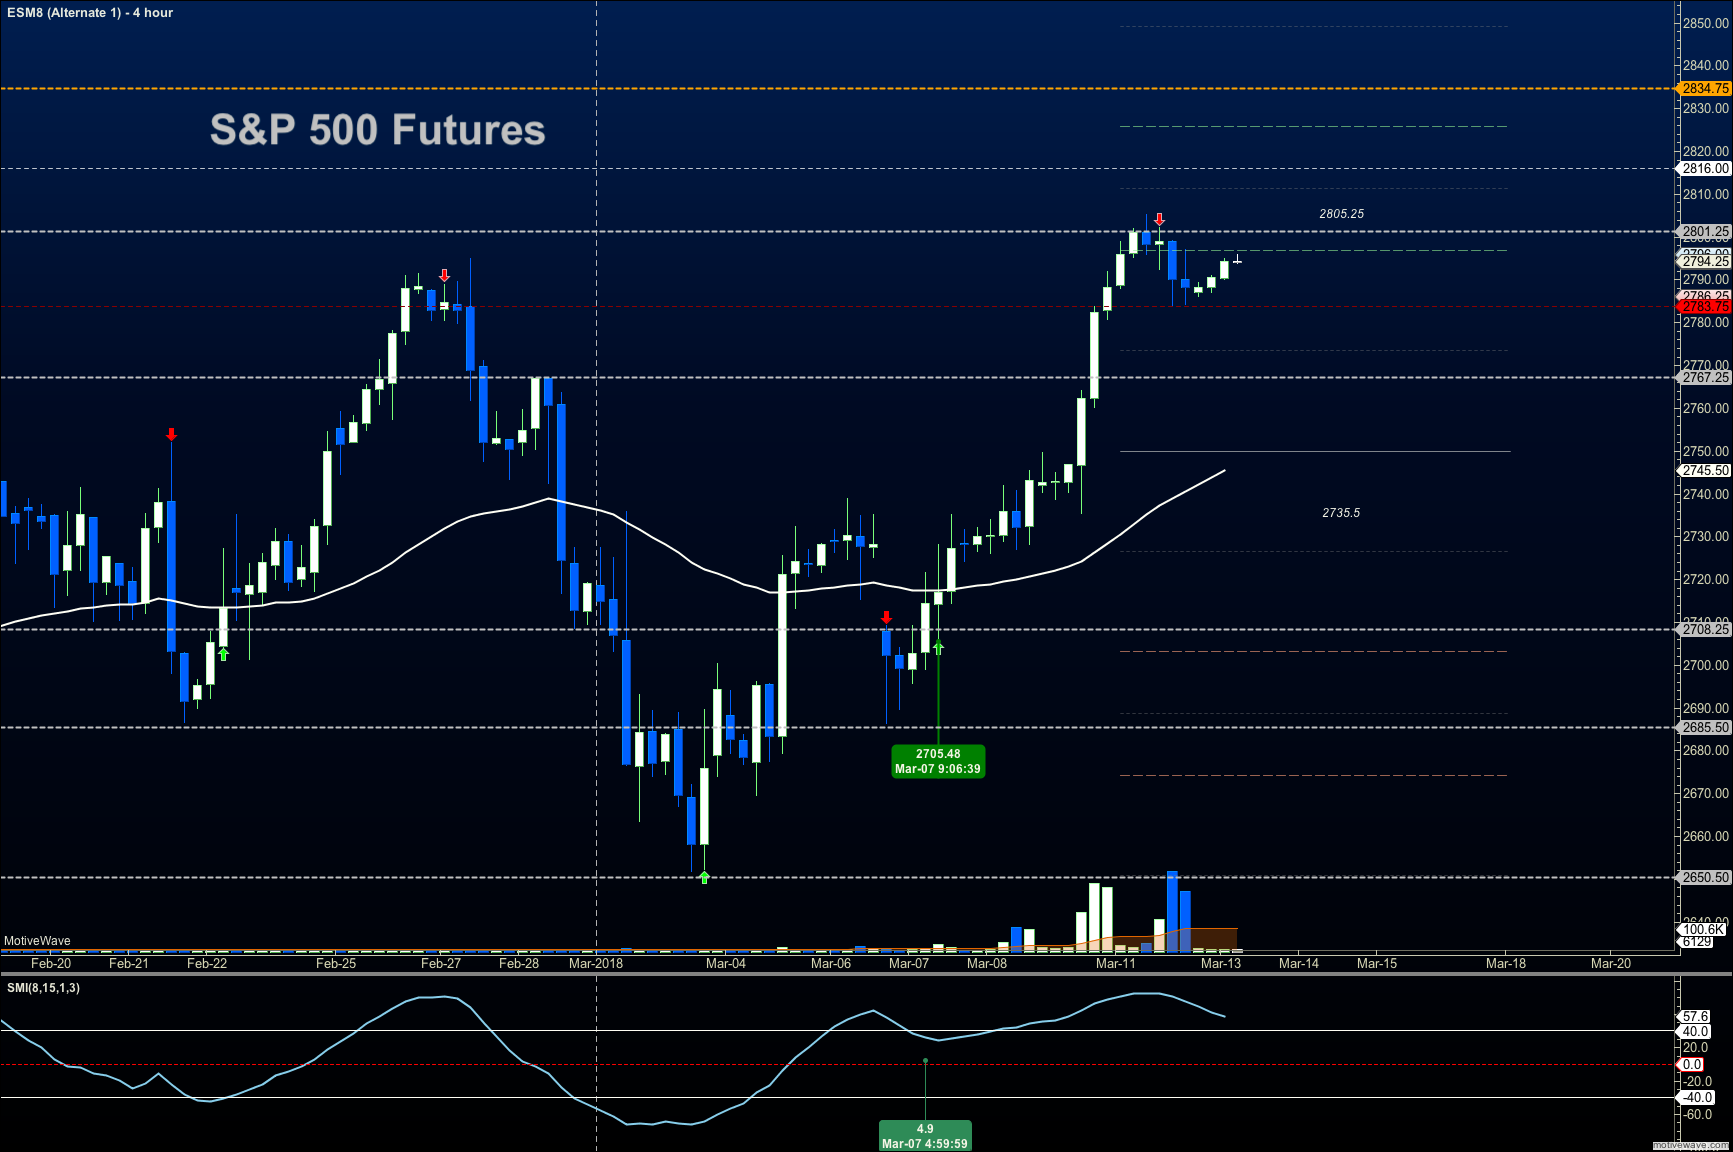 s&p 500 futures trading resistance march 13 news research